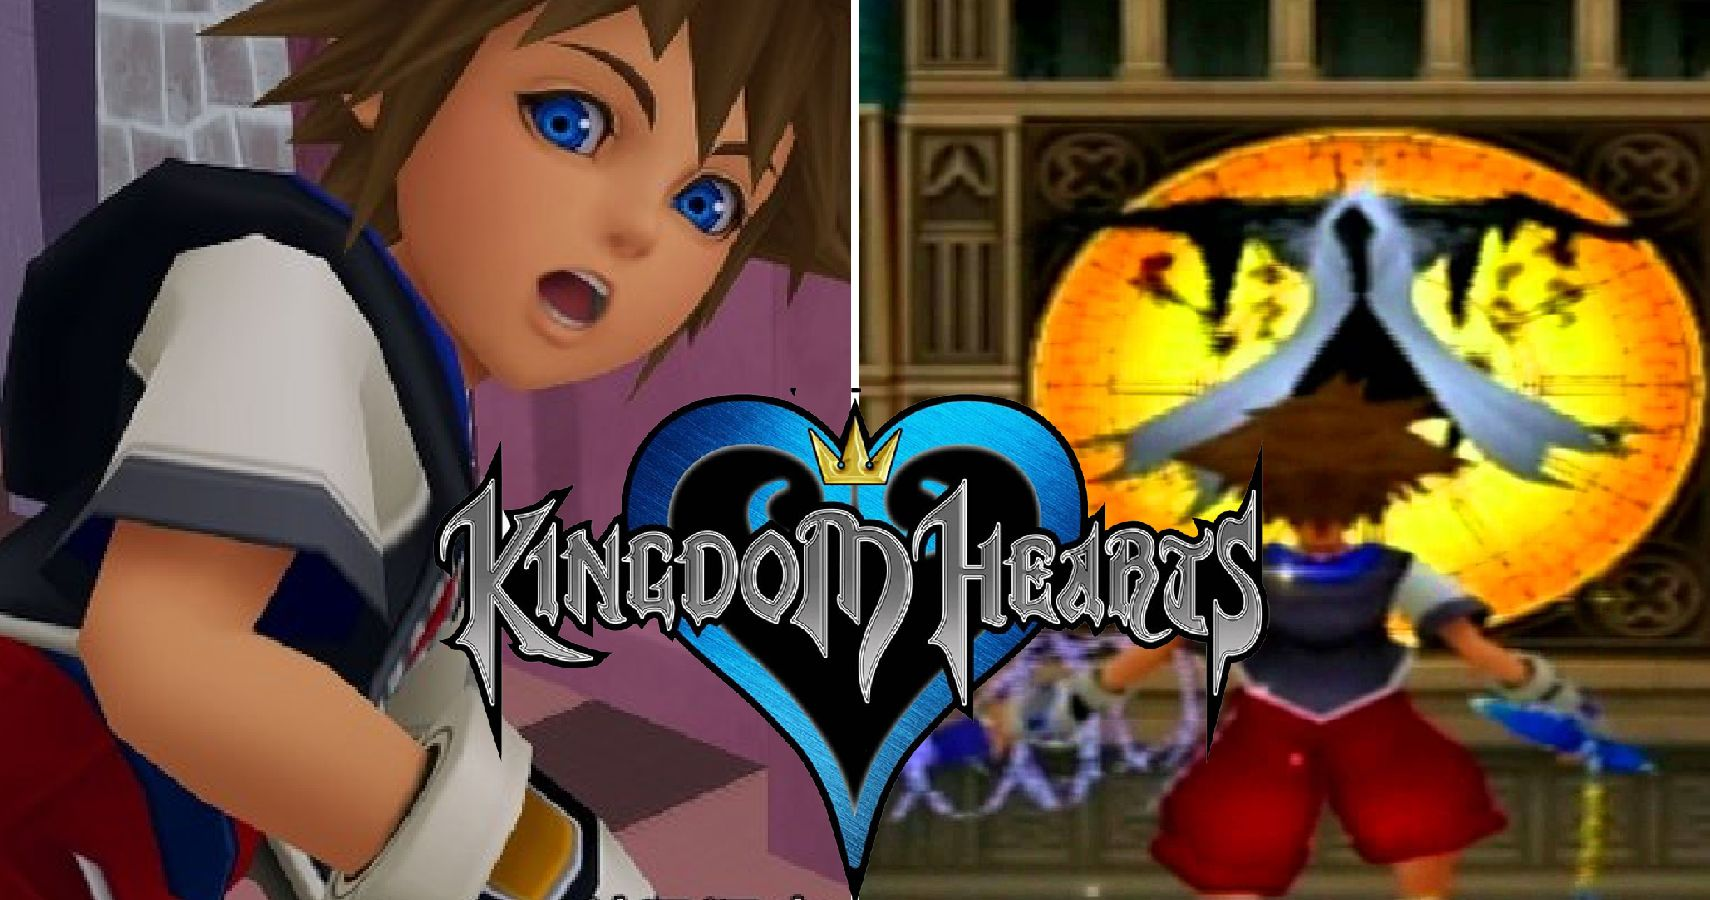 Awesome Things You Had NO IDEA You Could Do In Kingdom Hearts